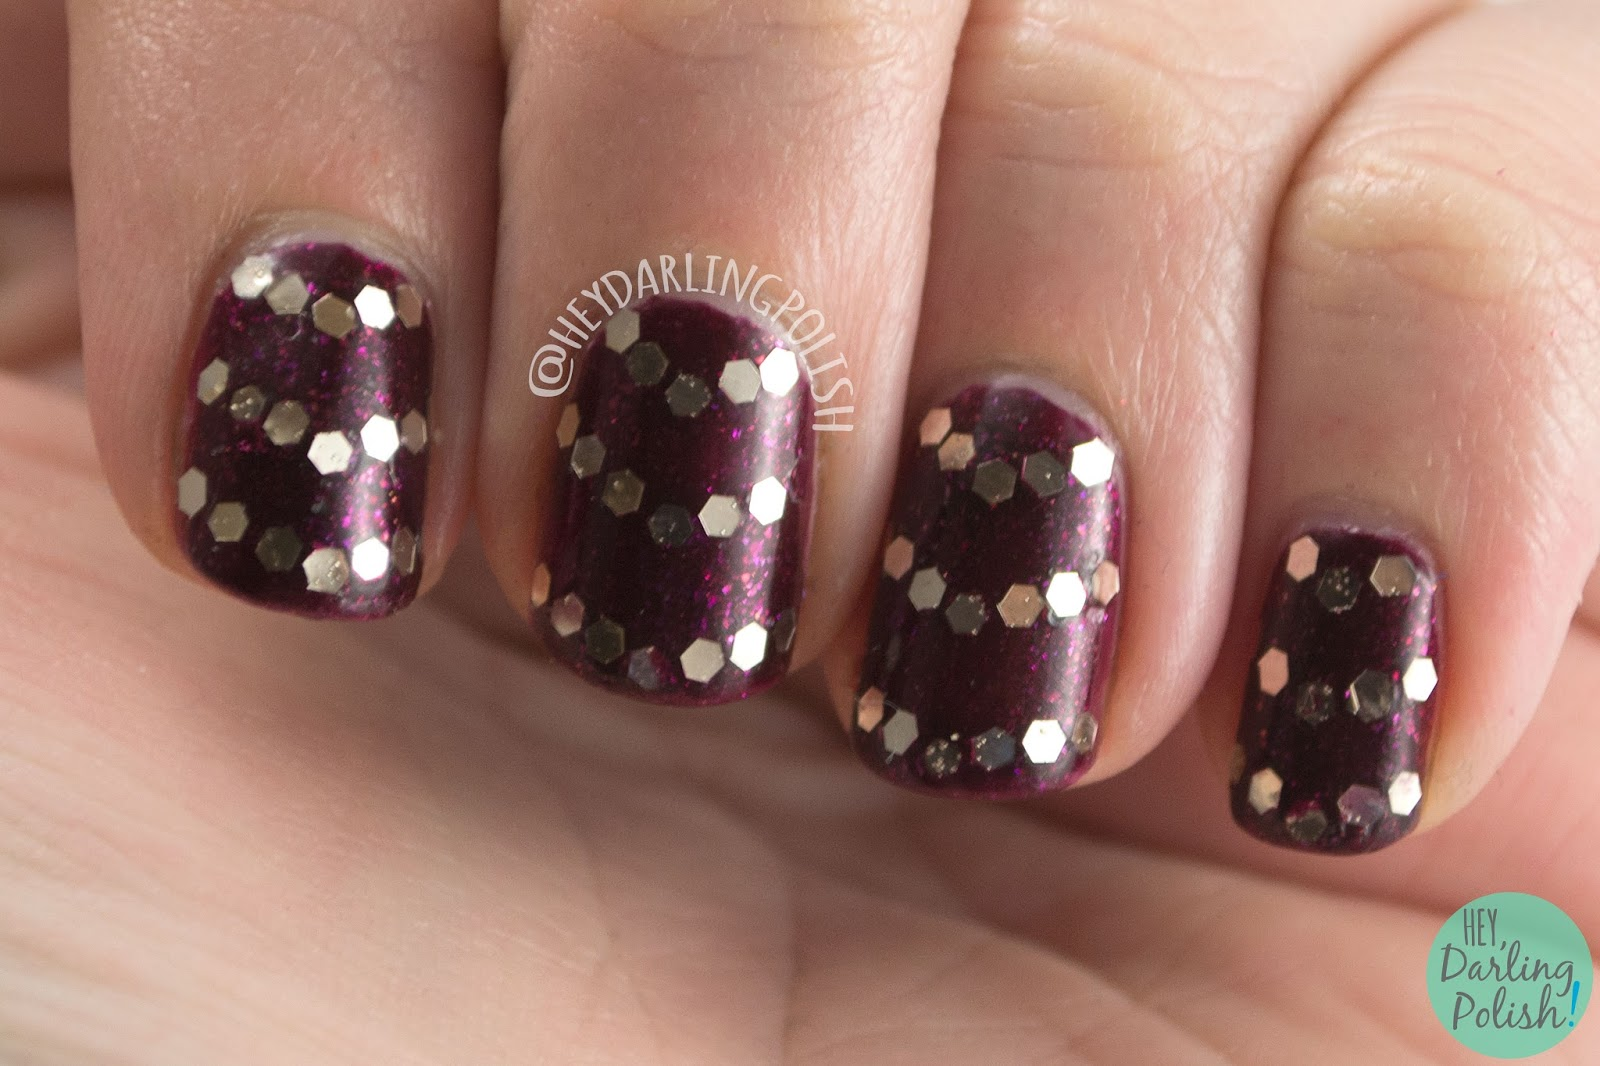 nails, nail art, nail polish, chevrons, glitter, glequins, hey darling polish, pahlish, indie polish, nail linkup